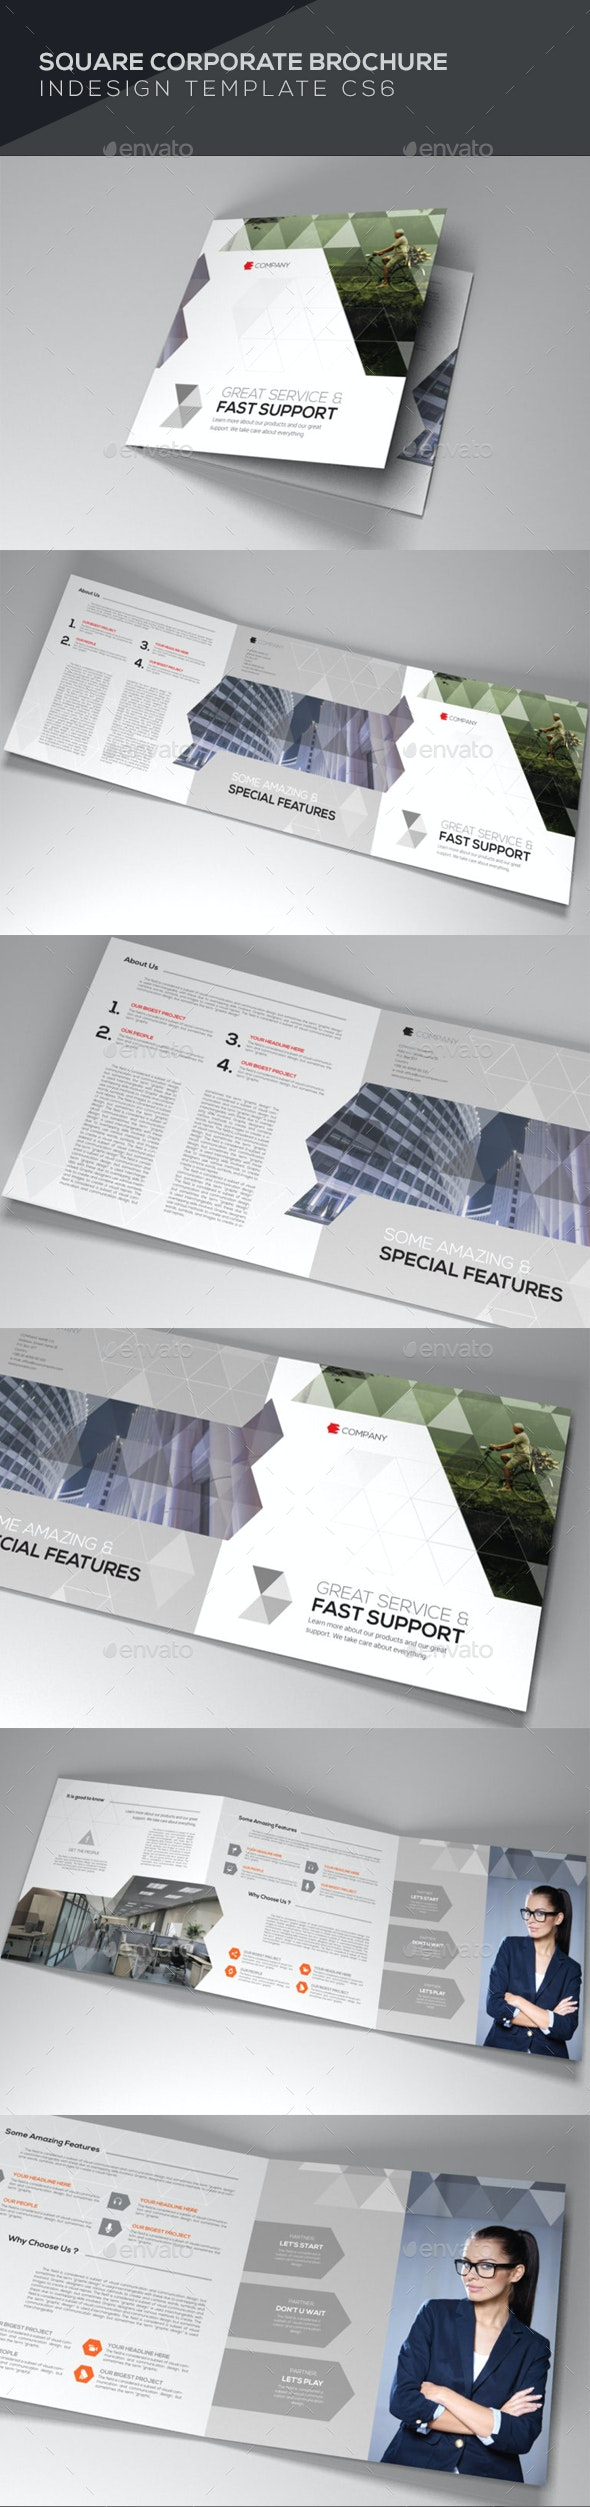 Square Corporate Brochure - Brochures Print Templates